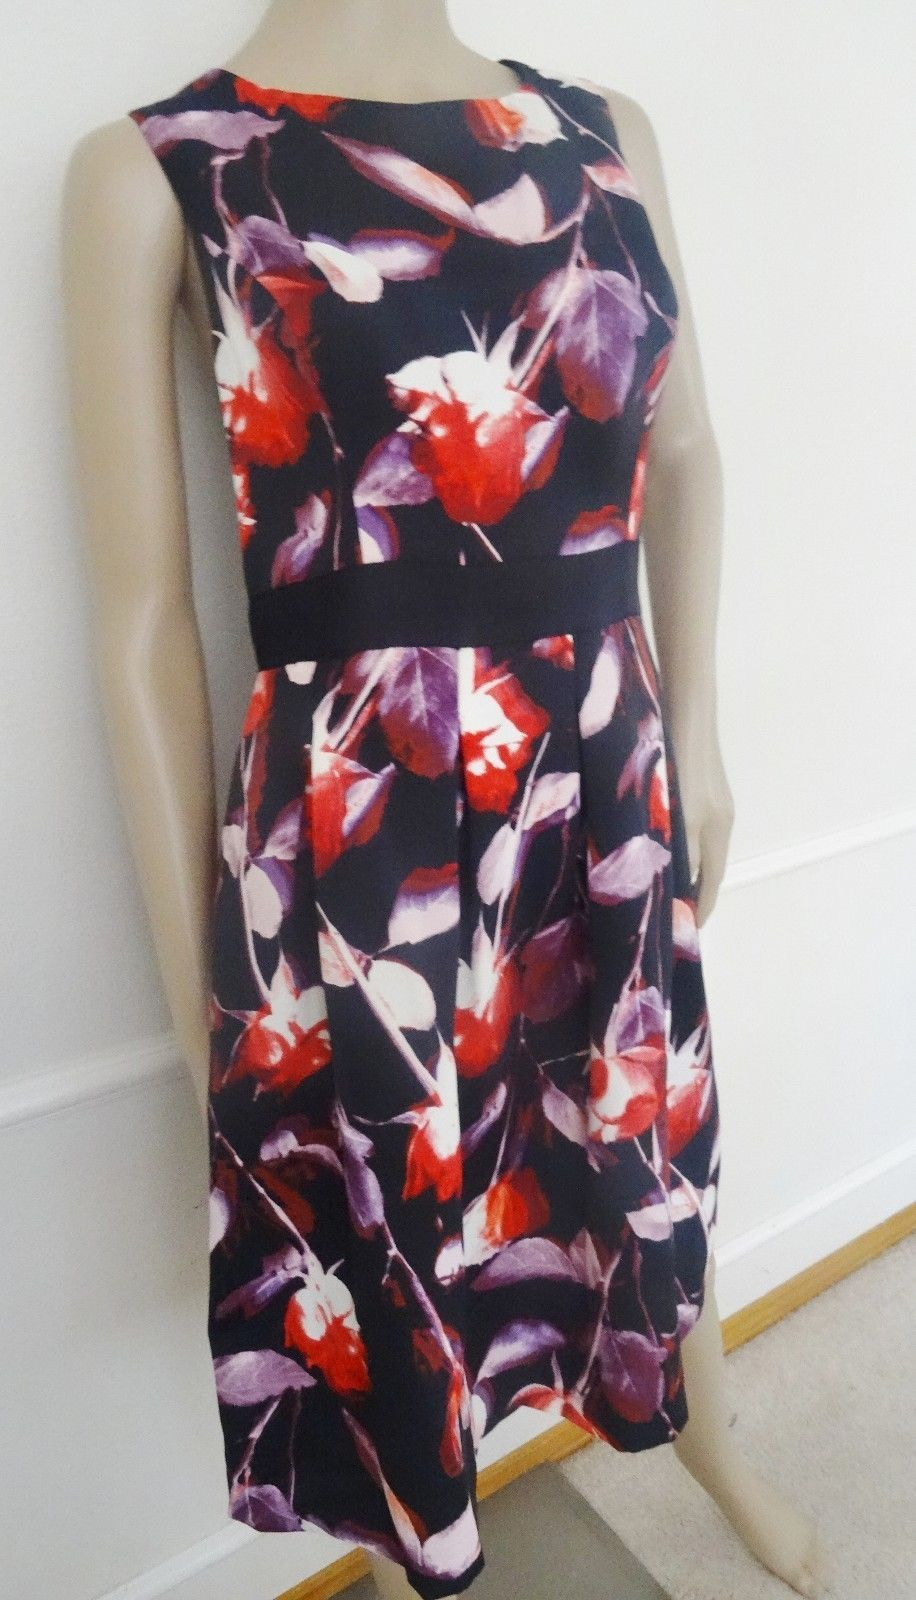 Nwt Adrianna Papell Sleveless Cocktail Flare Dress Sz 14 Black Red Floral $170